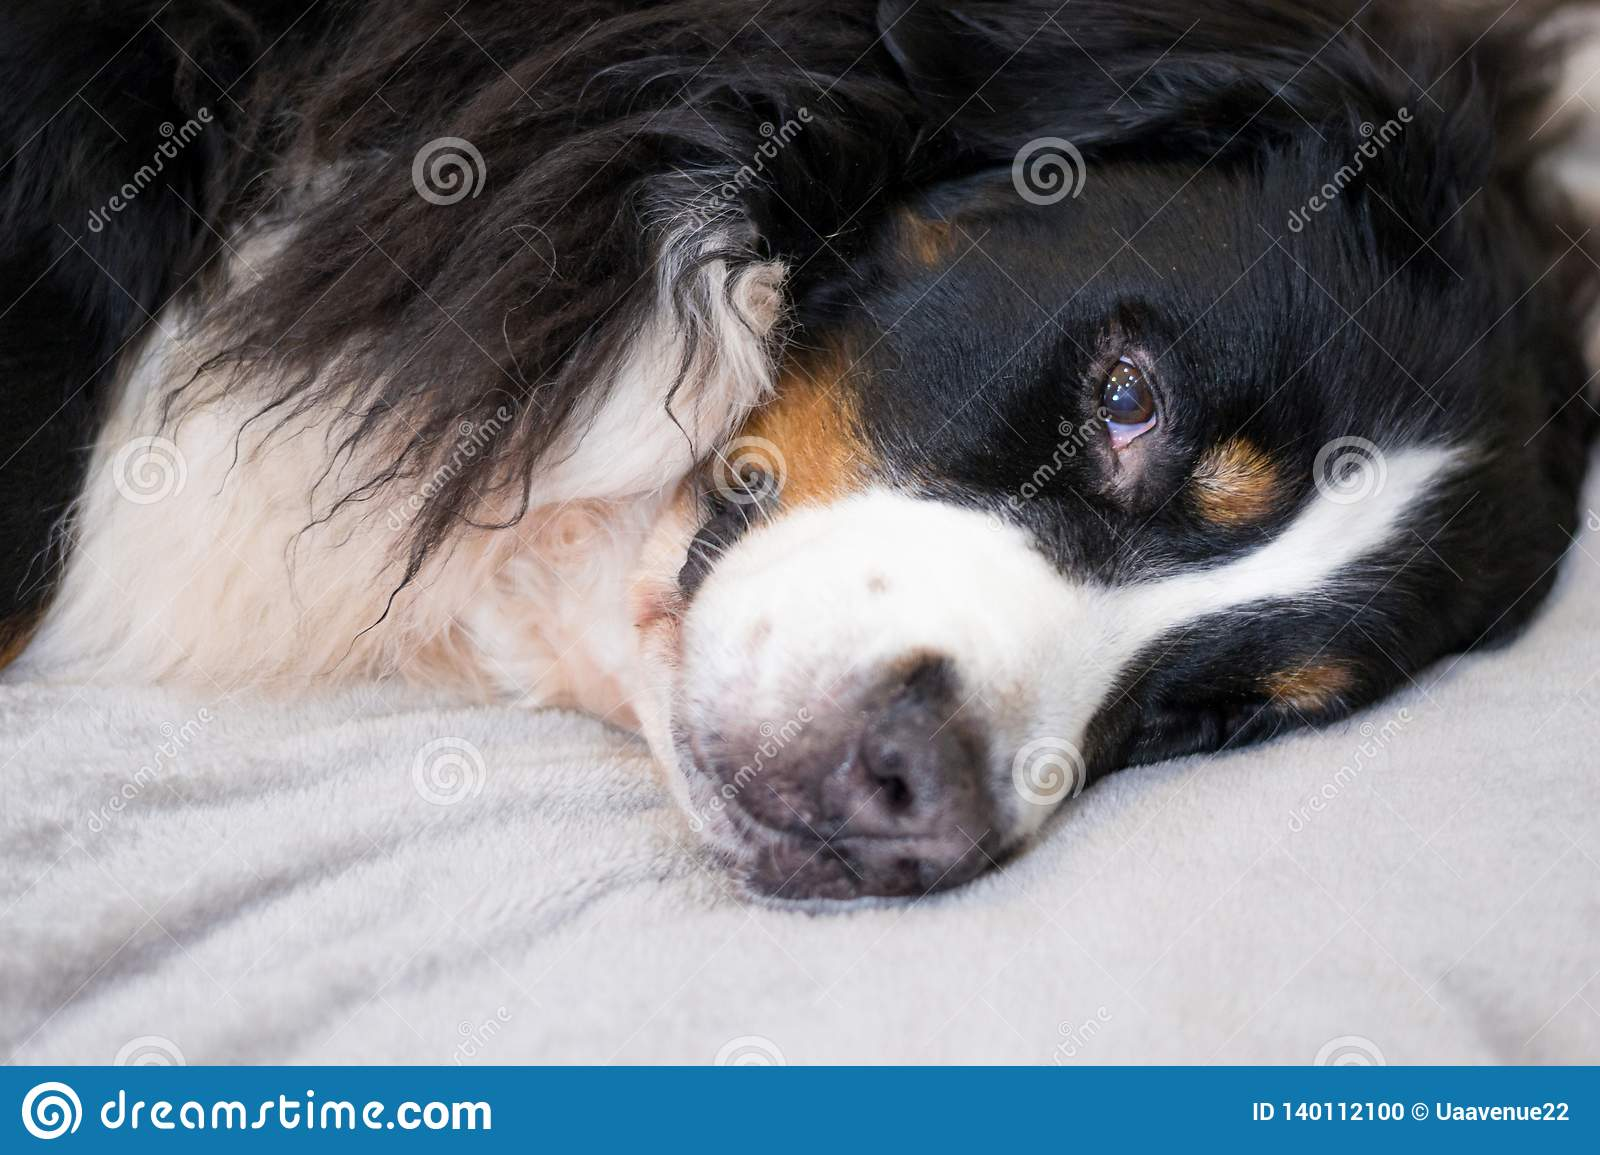 Sleepy Bernese Mountain dog is lying on beige plush plaid. time for sleeping. Comfortable and lovely home. Family time spending